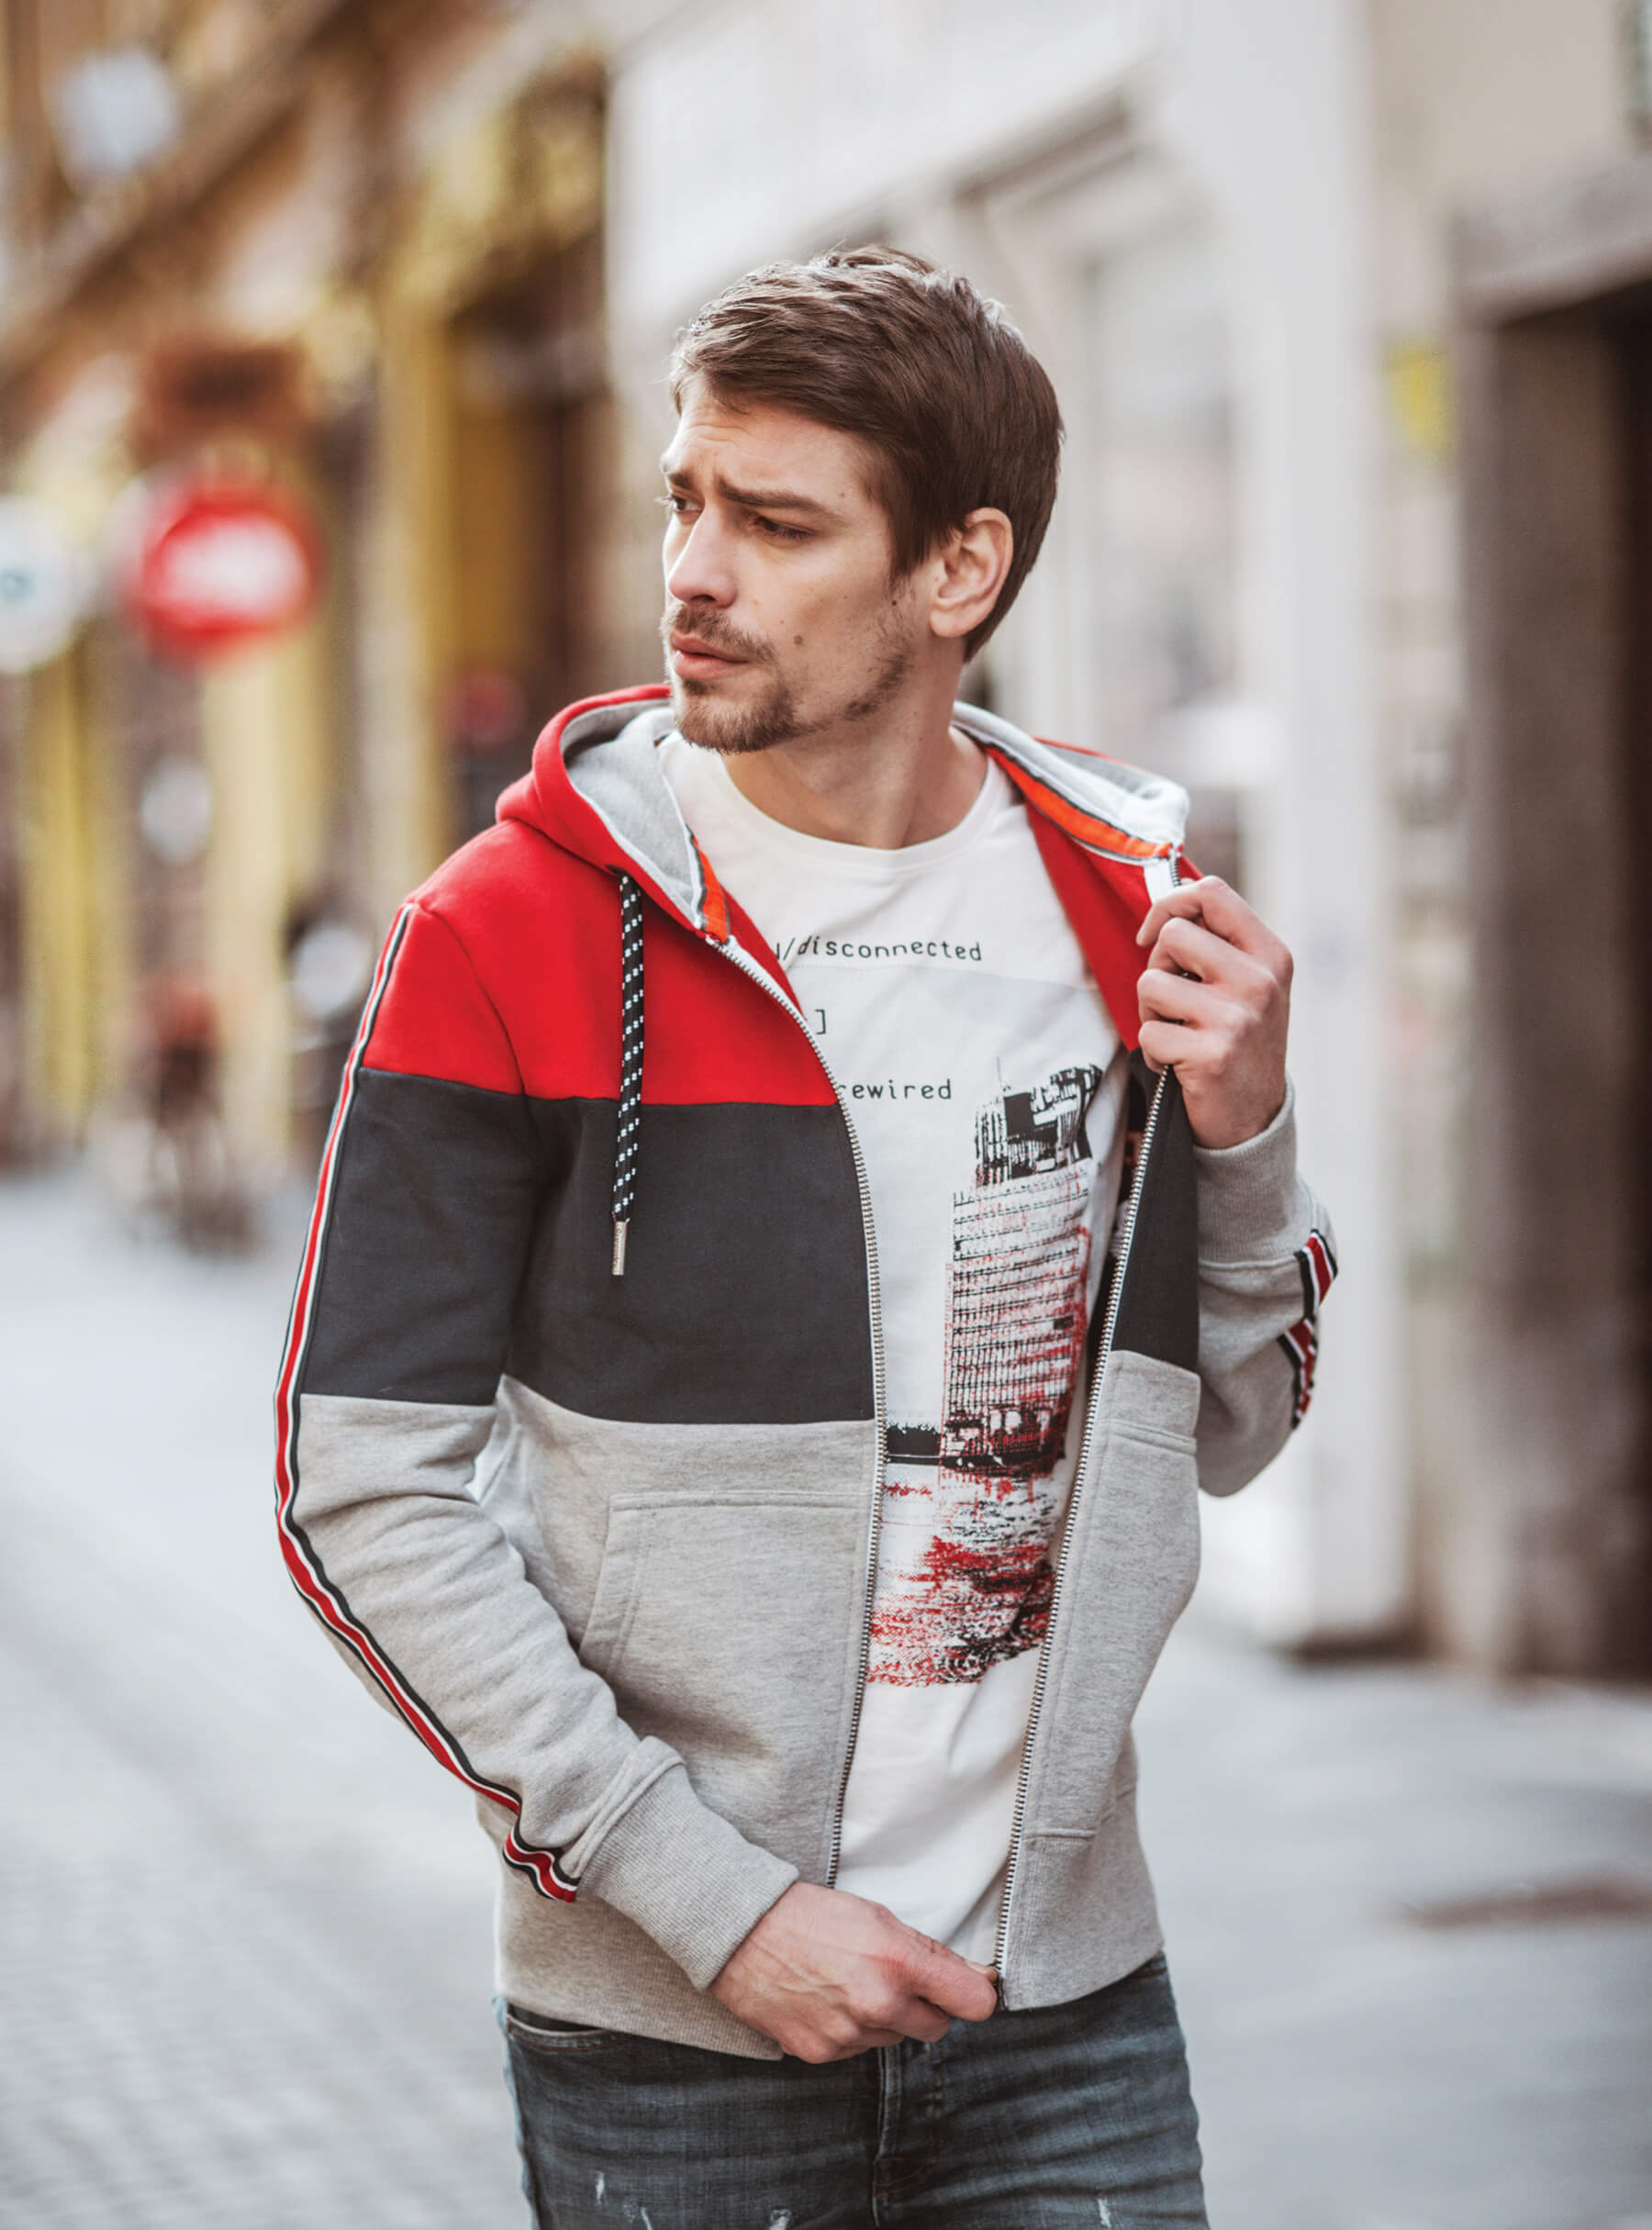 Majica Marx 17,99€ - Farmerke Jack & Jones, 79,99 €